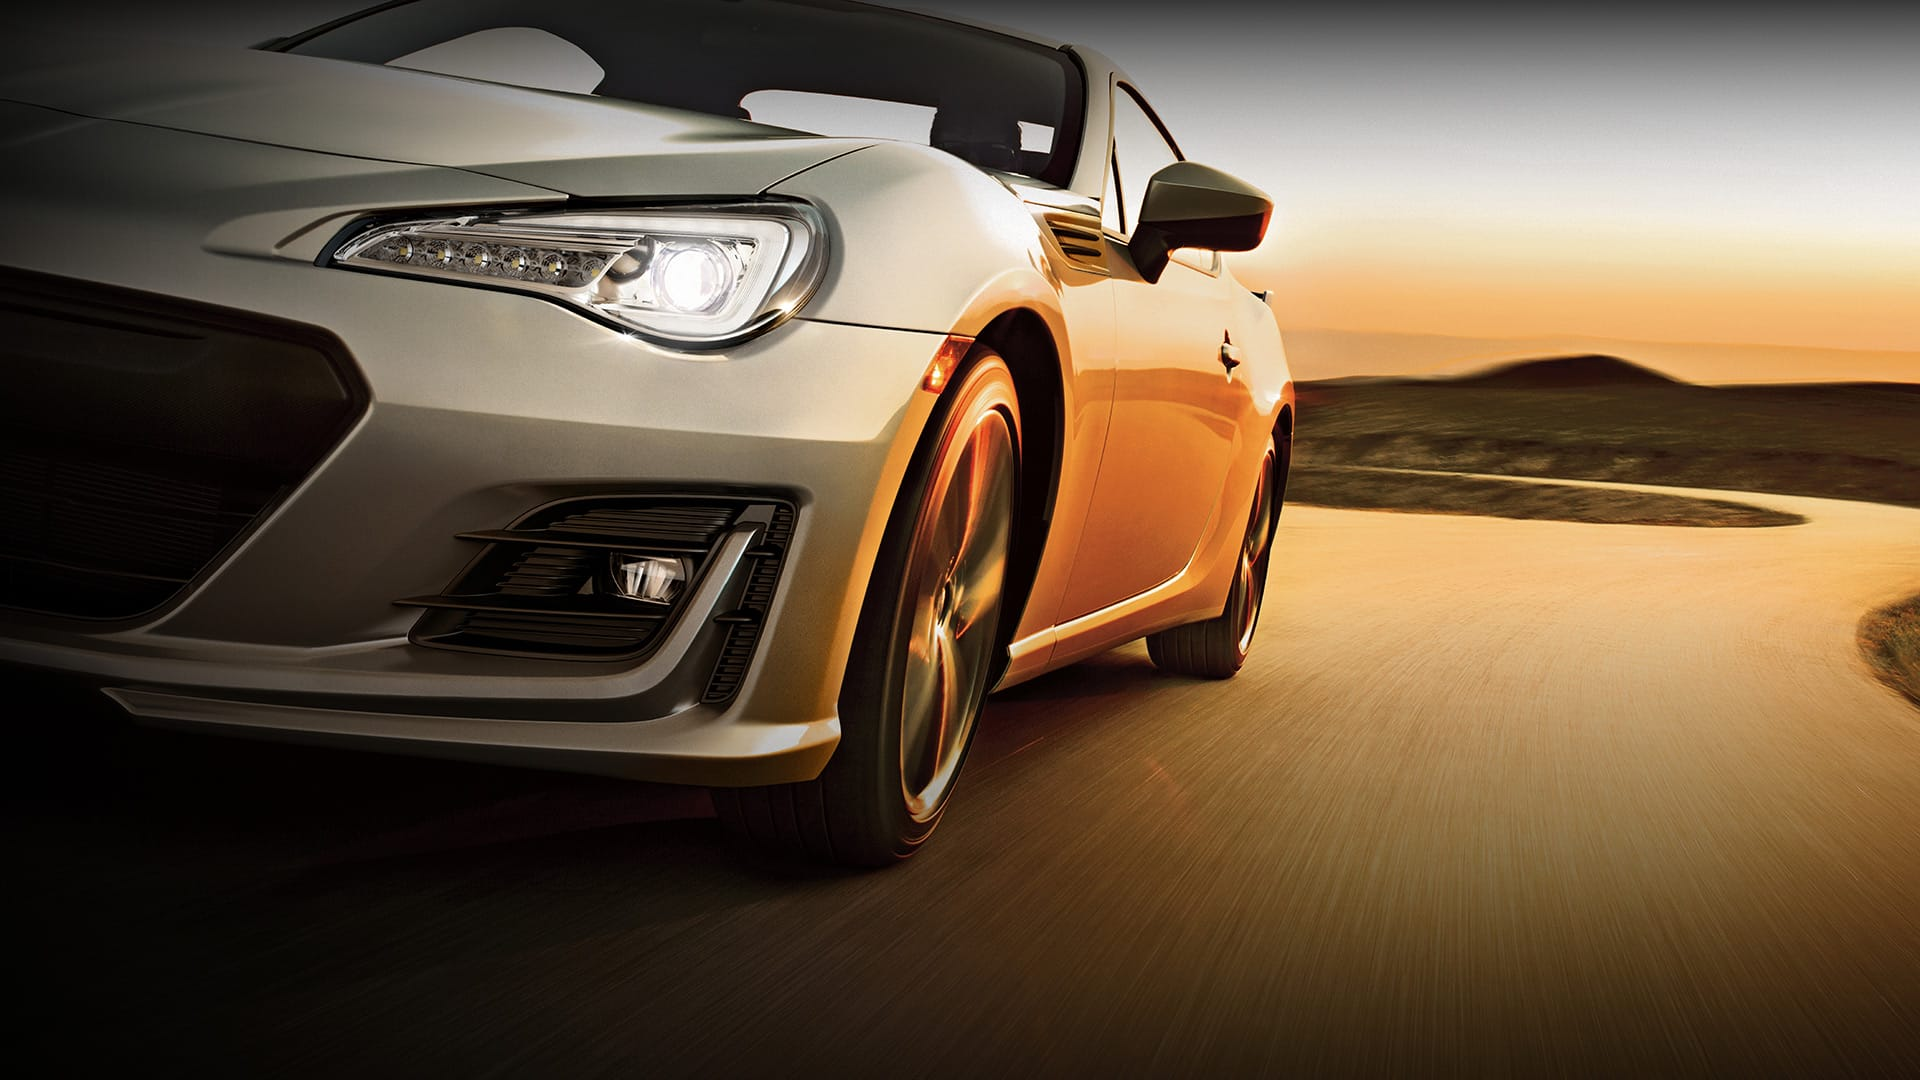 For a pure sports car like the BRZ, suspension is everything. SACHS<sup>&reg;</sup> performance dampers give the BRZ more stability, better ride quality, and more responsive handling.